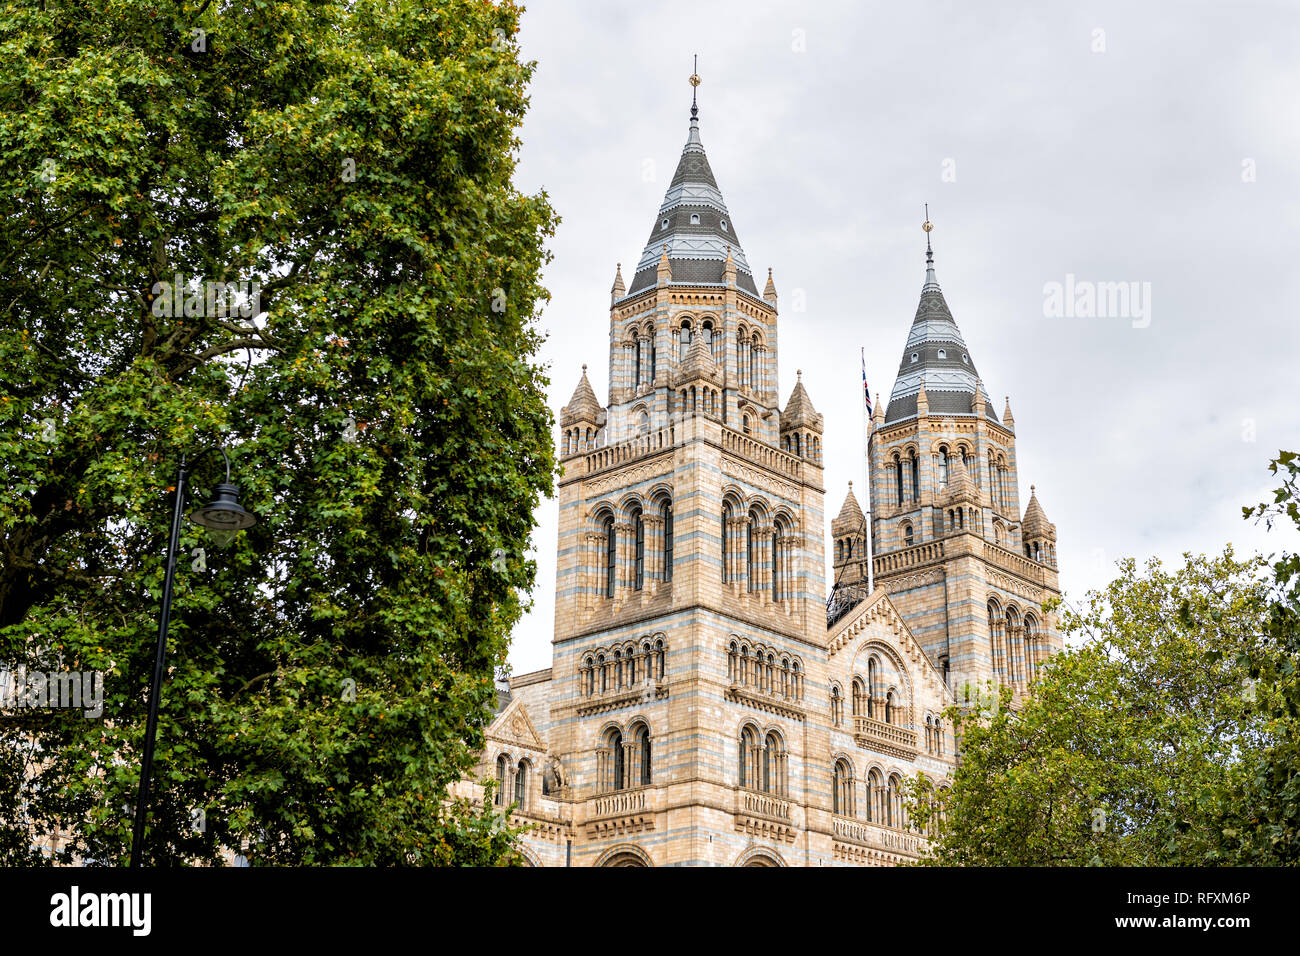 Exterior historic architecture of Natural History Museum in Kensington Chelsea area of London, UK during cloudy summer autumn day looking up and nobod - Stock Image